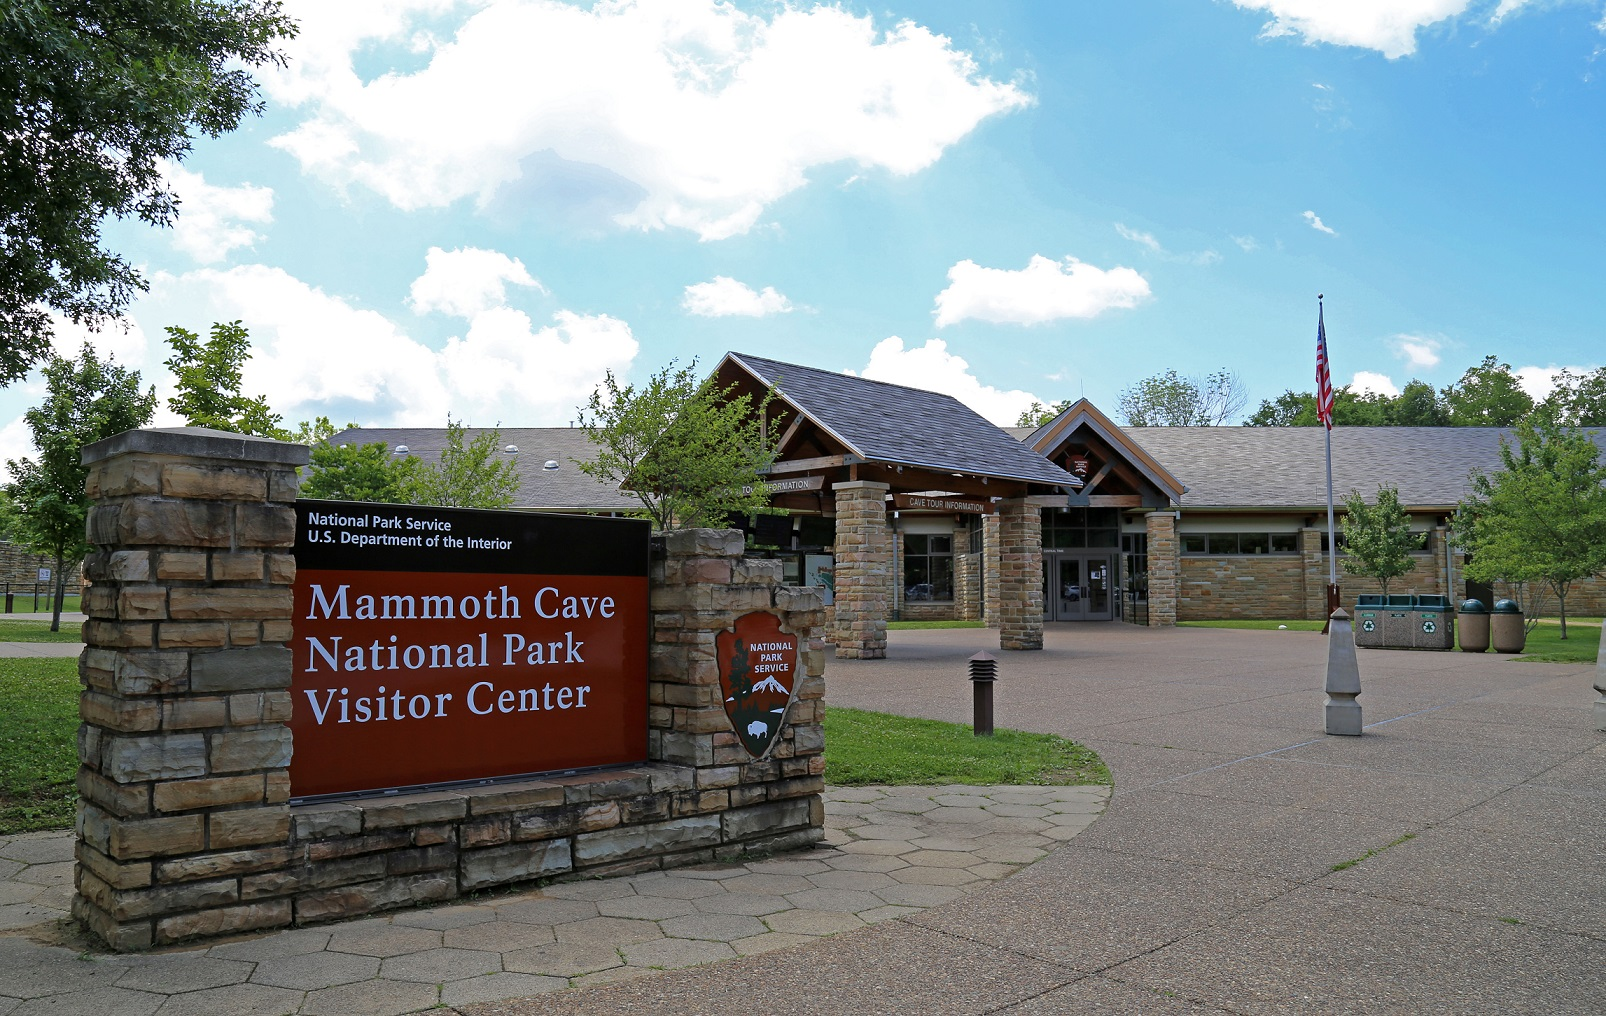 Image of large Mammoth Cave National Park Visitor Center sign with building and flagpole in the background.